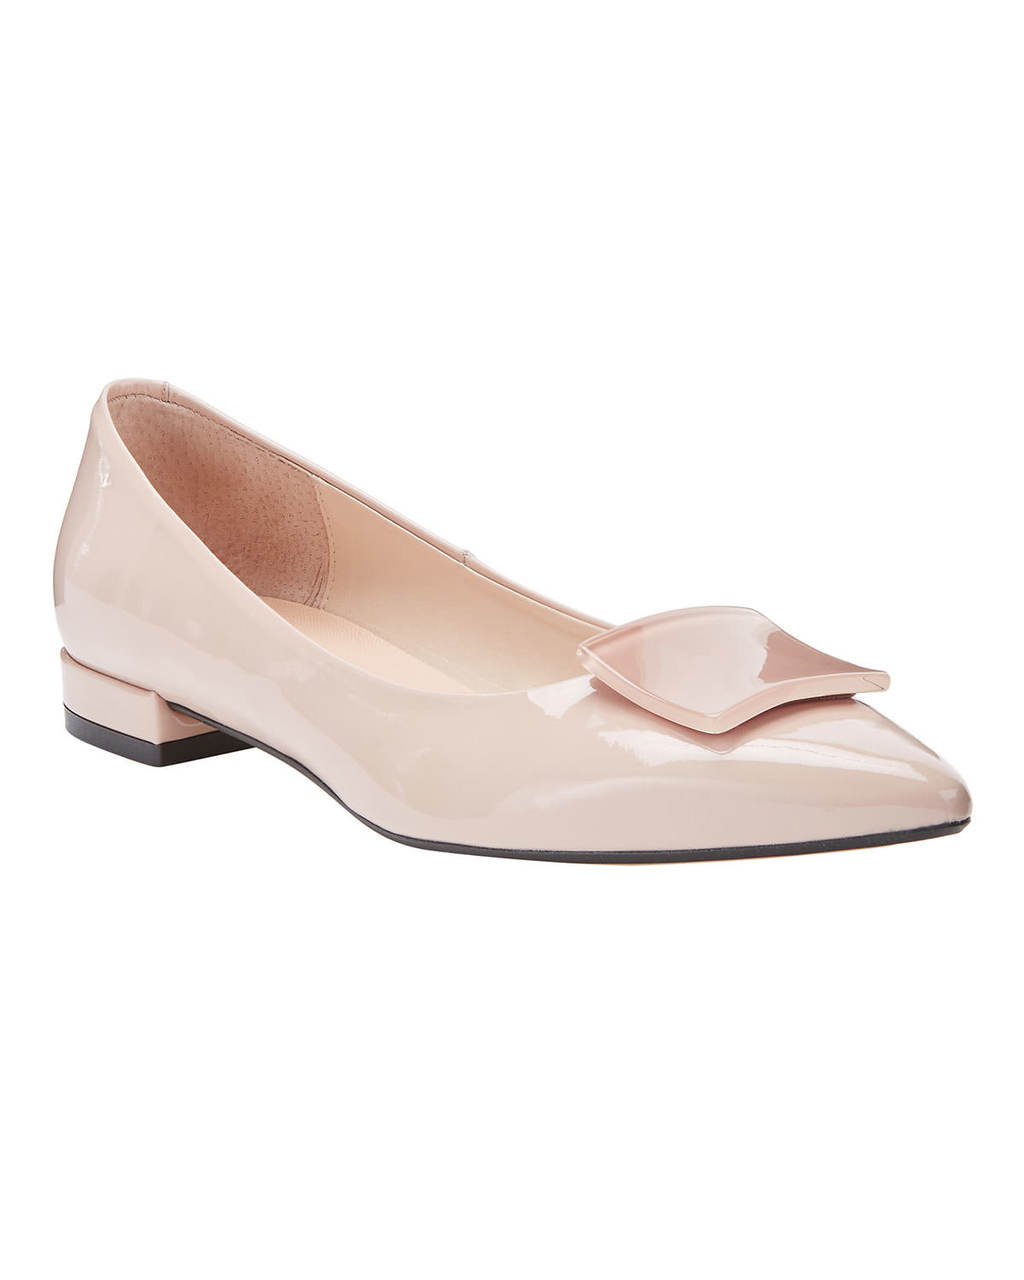 Ruby Leather Pump - predominant colour: nude; occasions: casual, work, creative work; material: leather; heel height: flat; toe: pointed toe; style: ballerinas / pumps; finish: patent; pattern: plain; season: s/s 2016